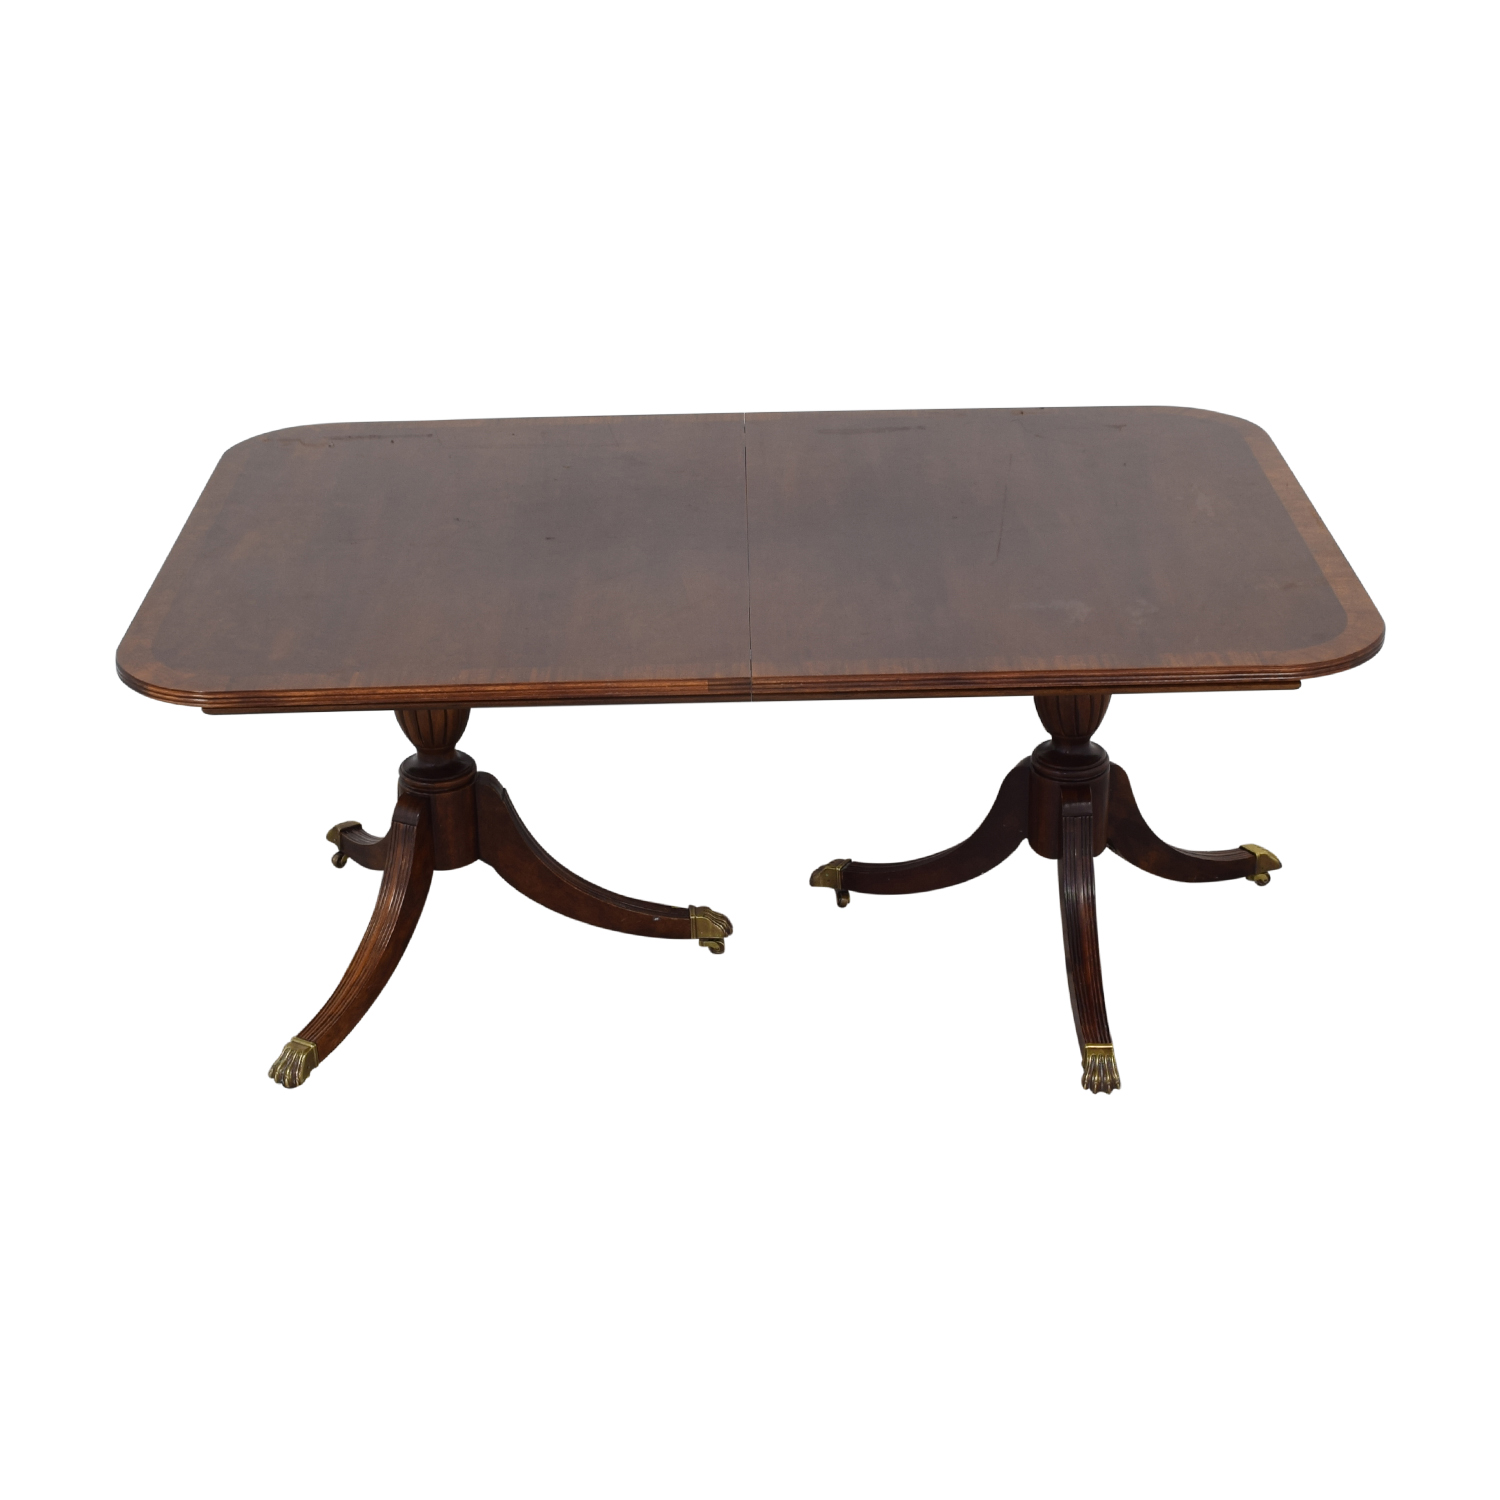 Thomasville Thomasville Extendable Dining Table for sale